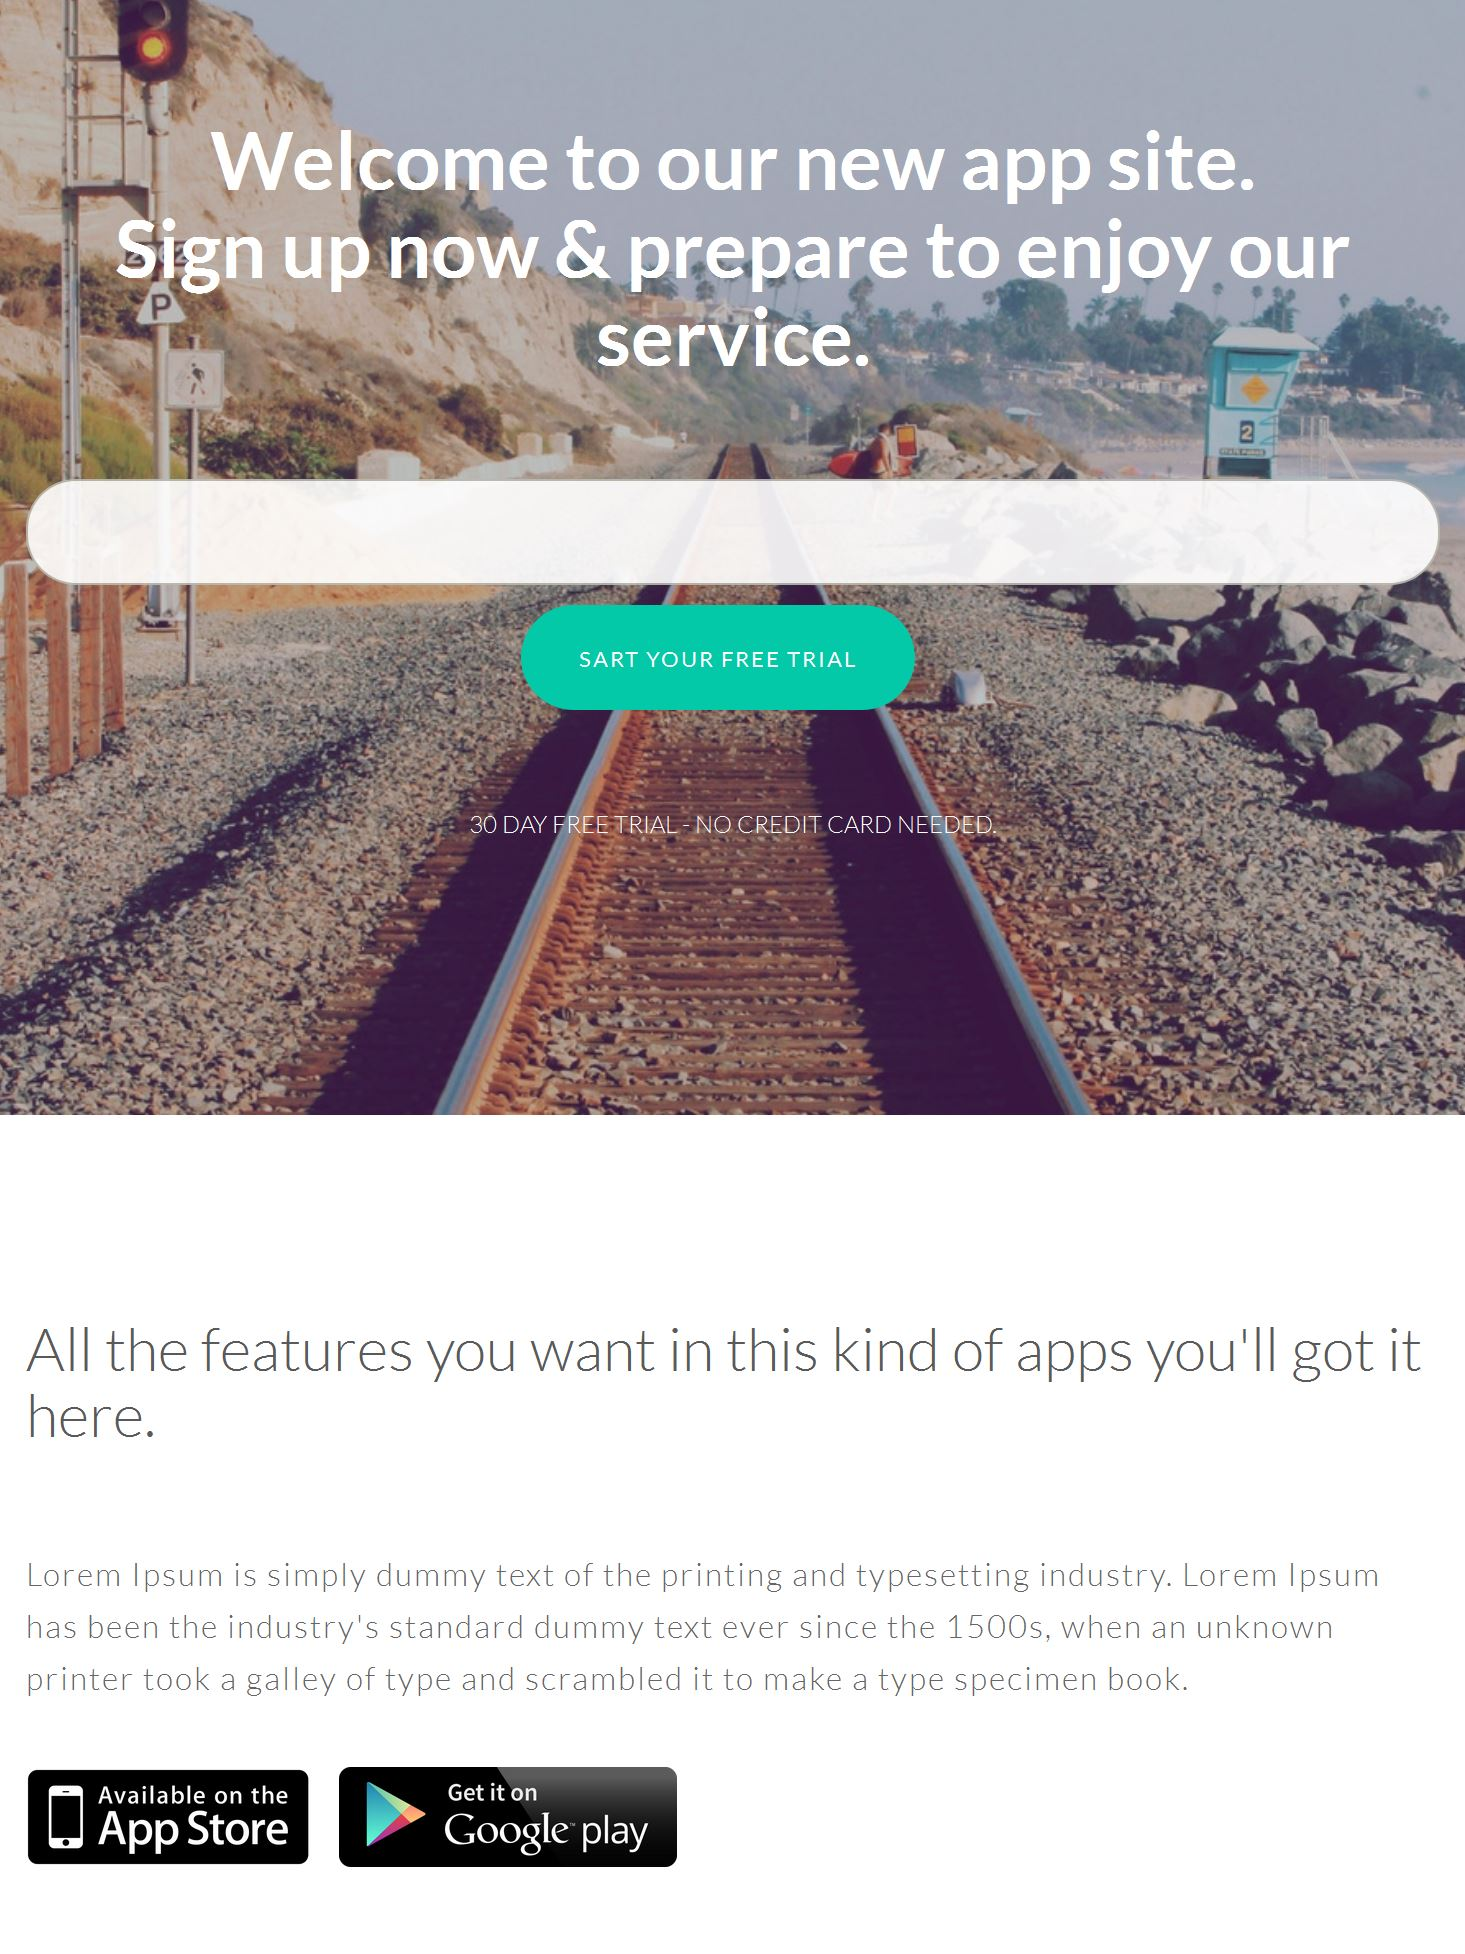 Carousel Bootstrap Template